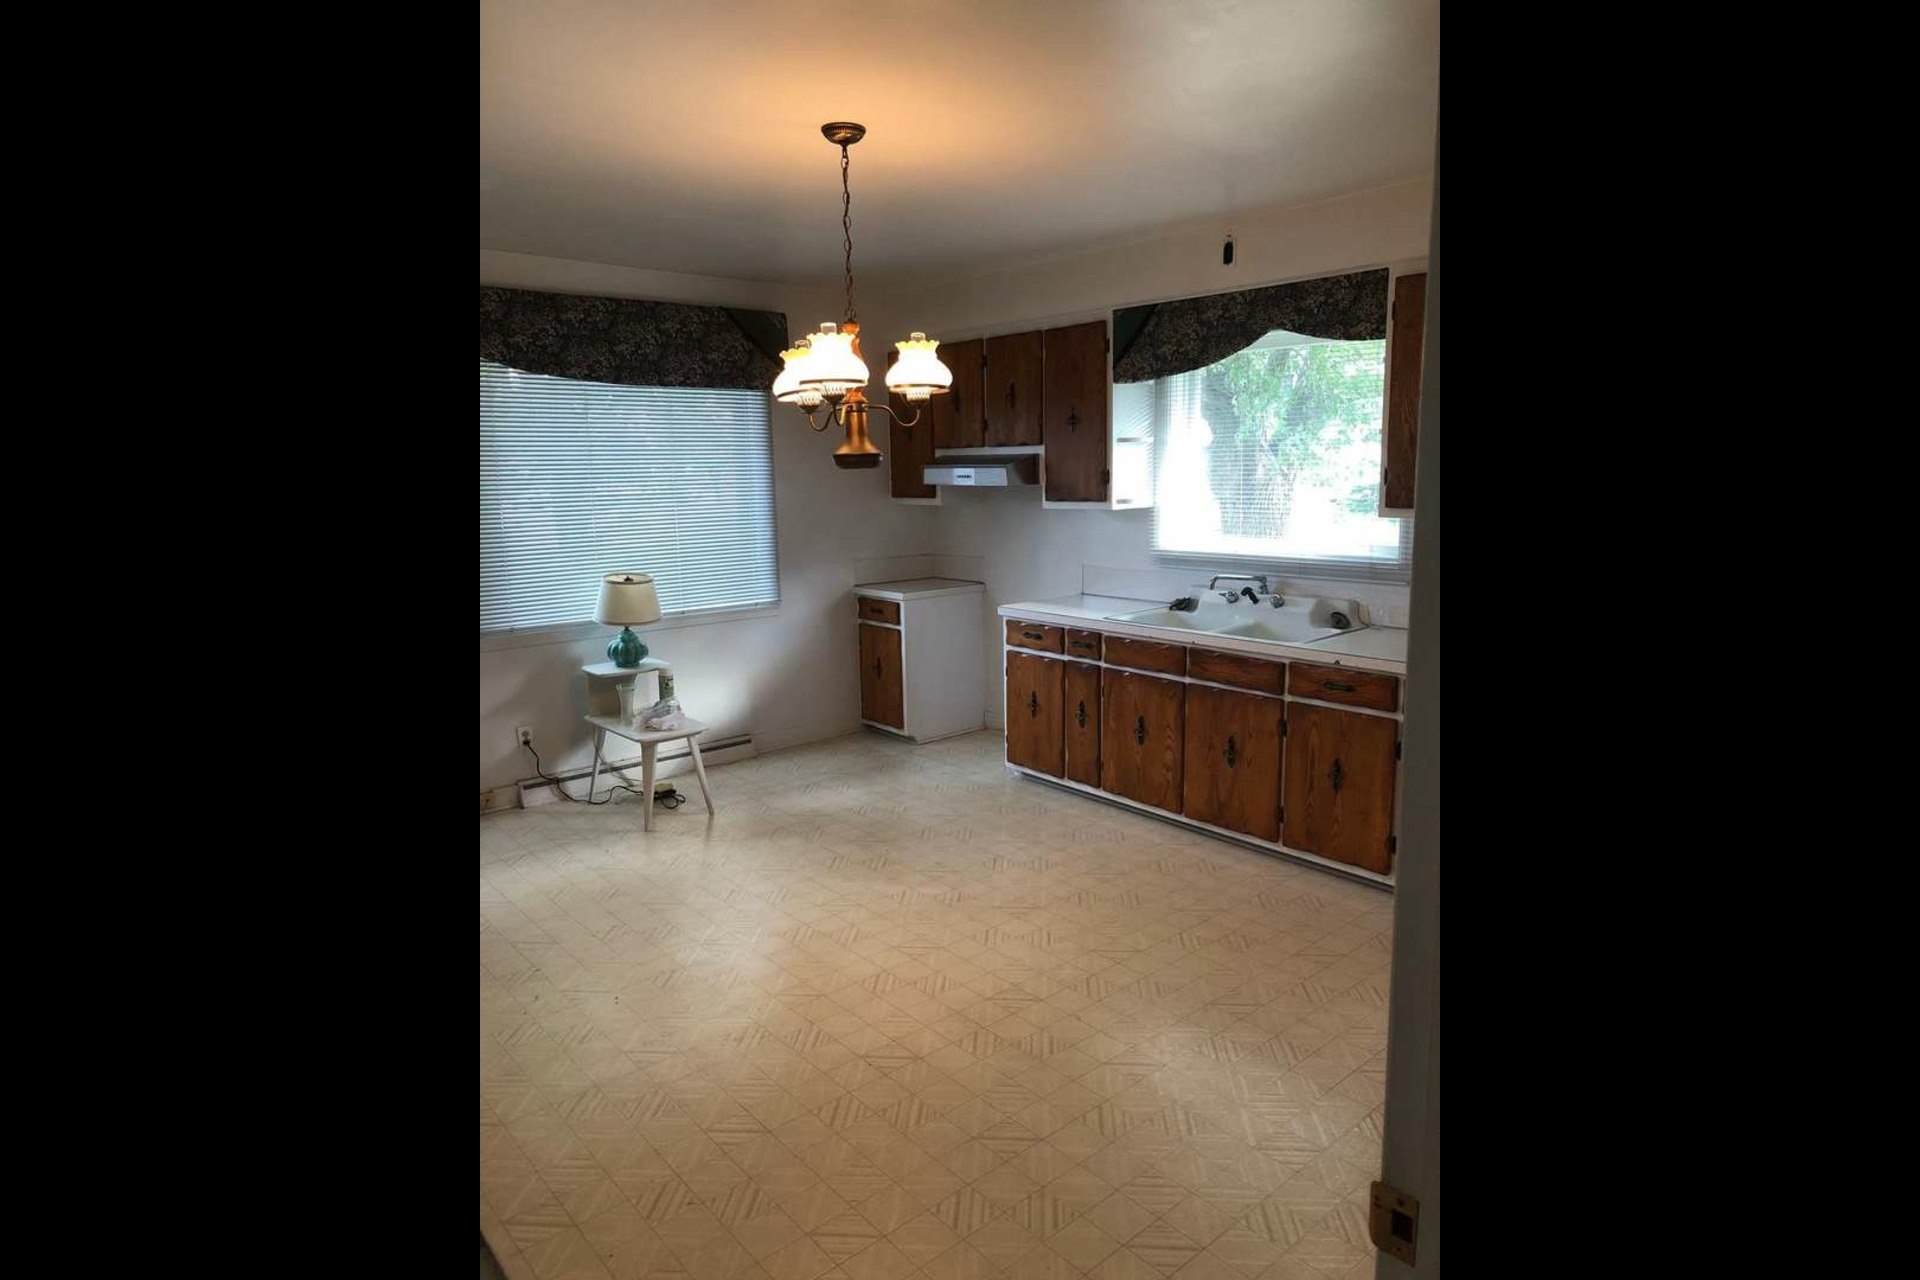 image 2 - House For rent Repentigny - 5 rooms